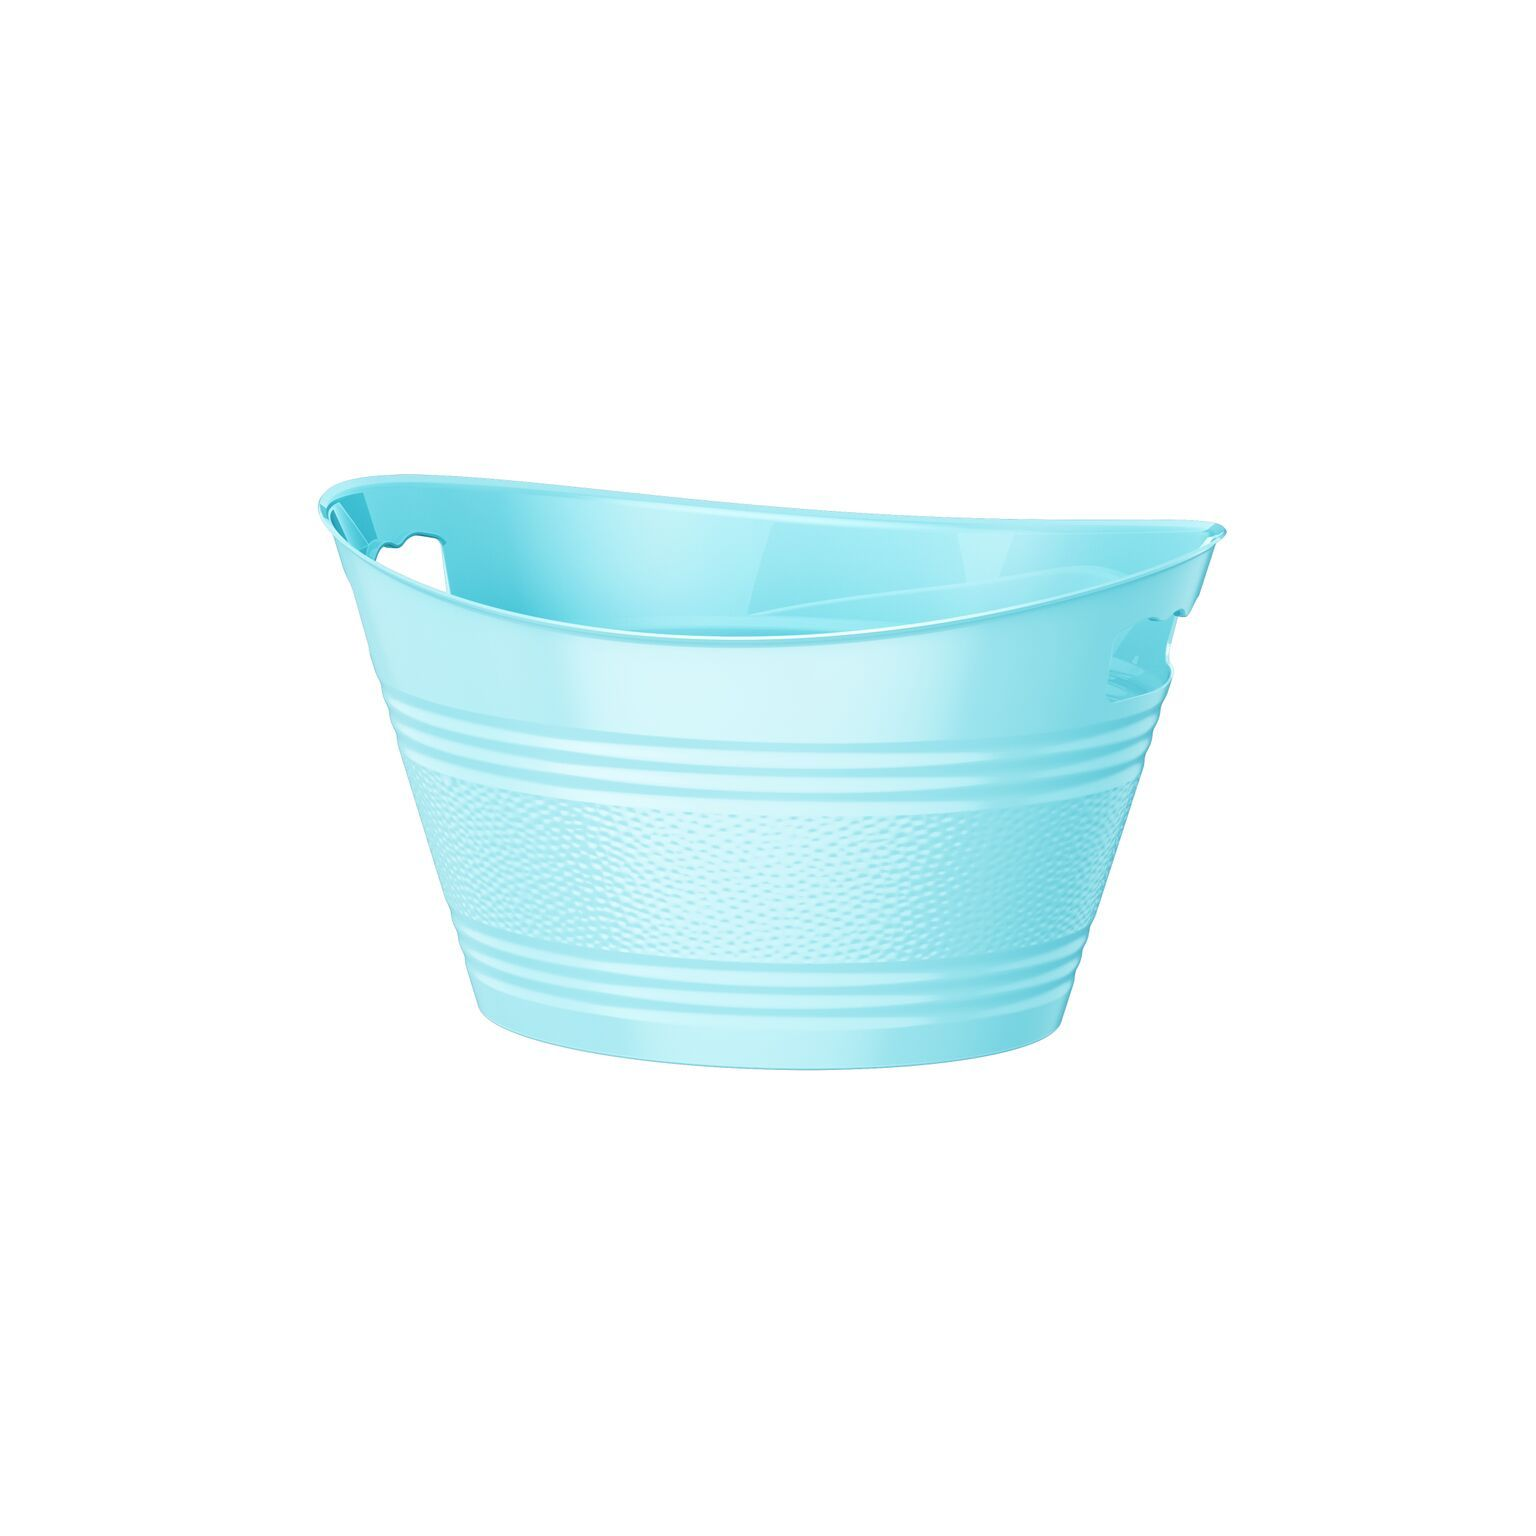 1 Gallon The Bucket Cotton Candy Blue Bucket Gallon Top Trends